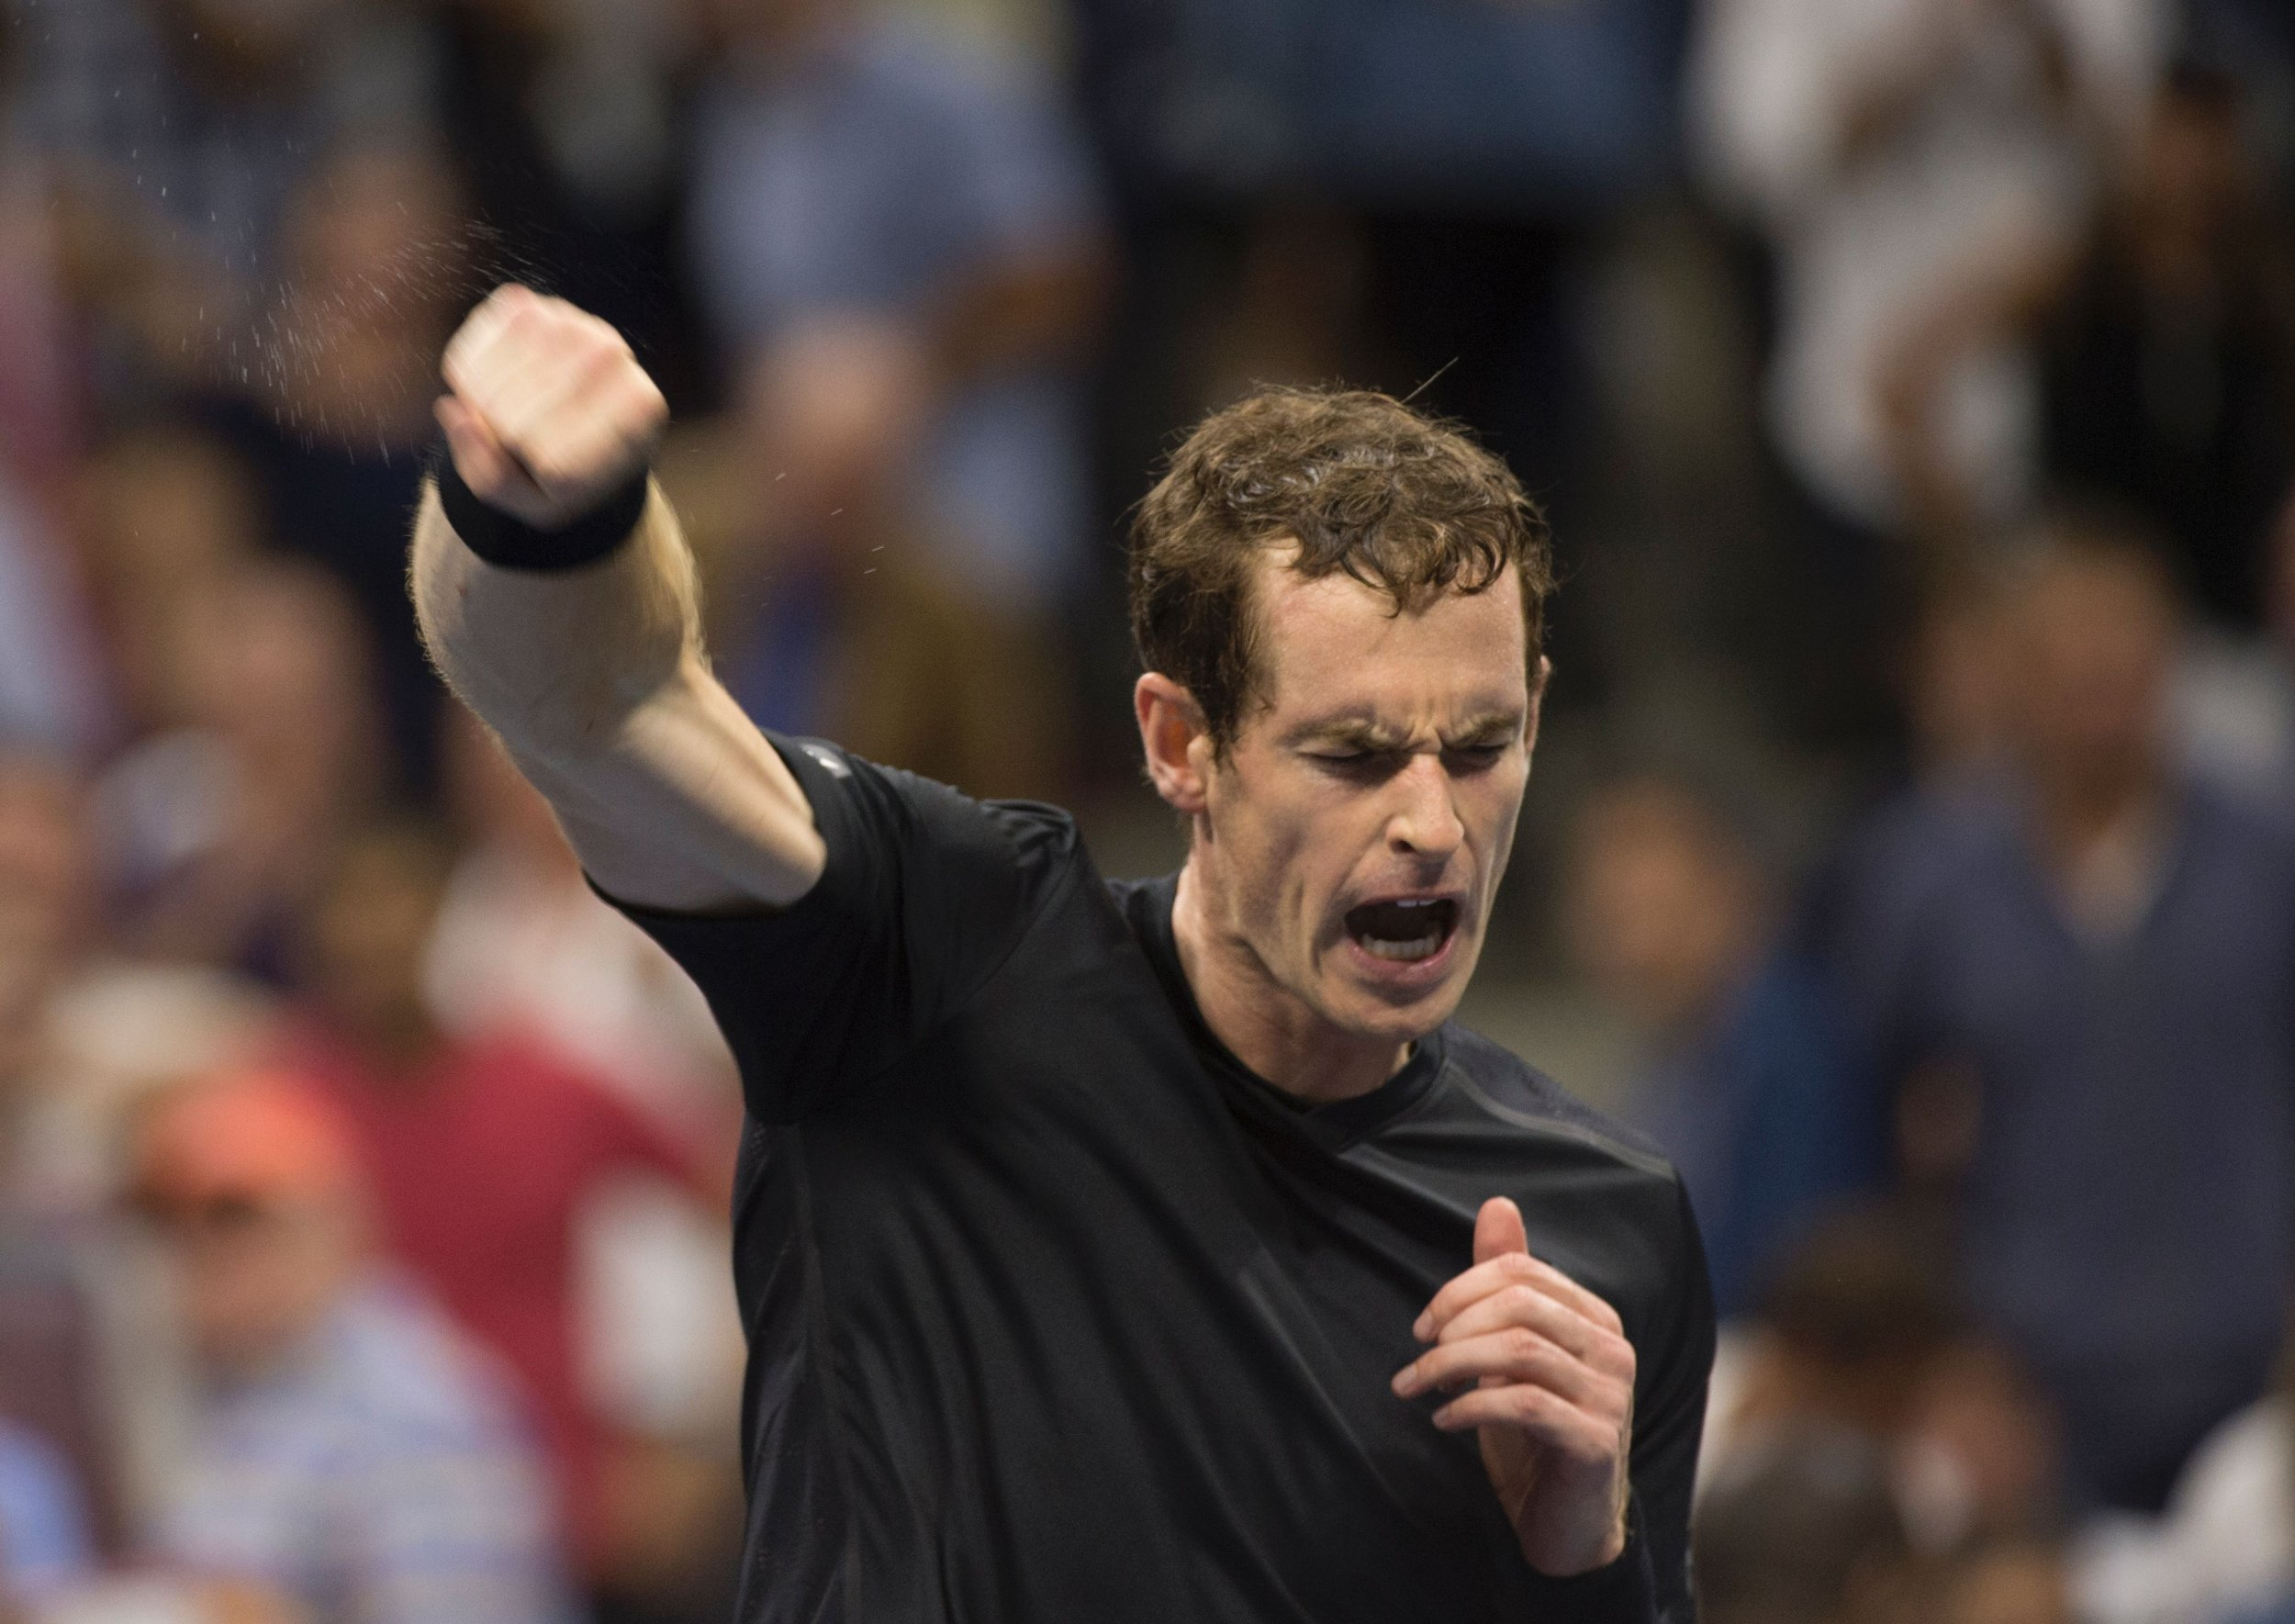 World number two tennis player Andy Murray.